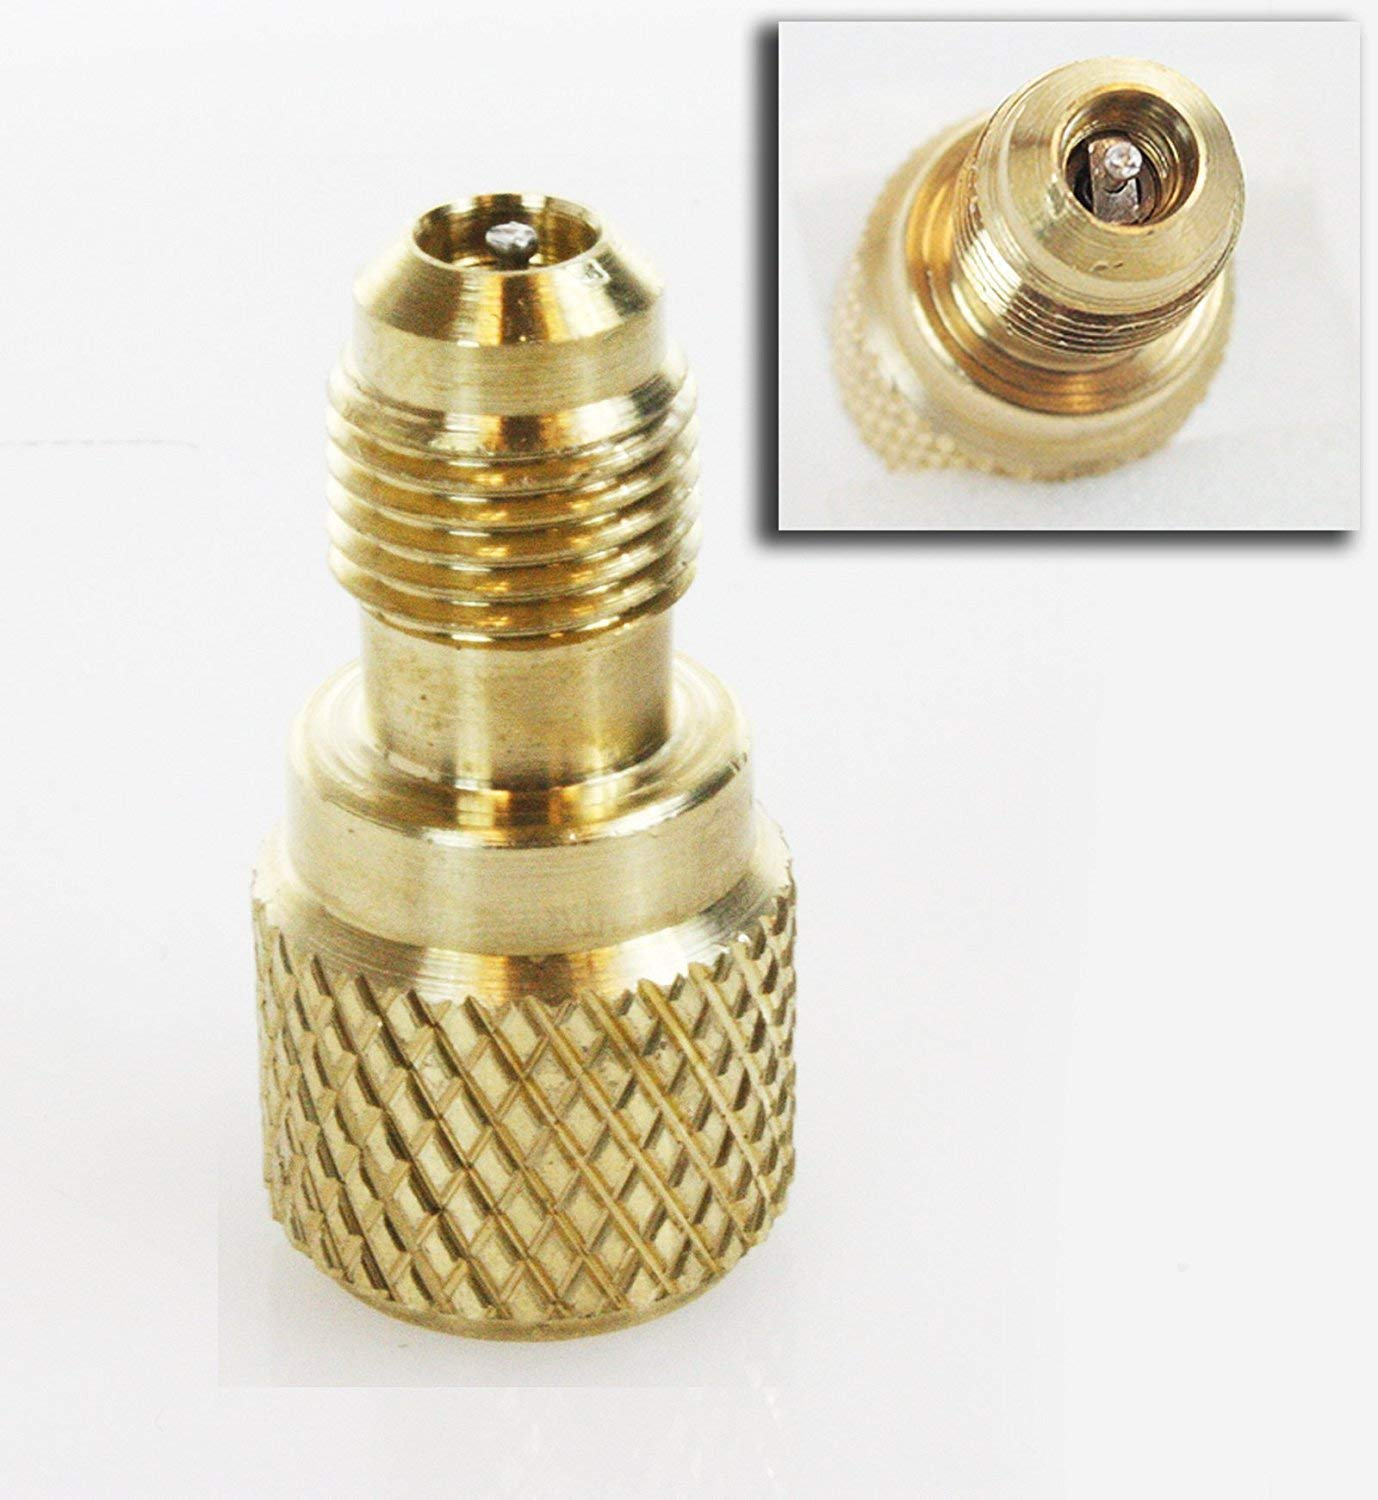 """ACME AC R134a Brass Adapter Freon Fitting 1/4"""" Male to 1/2"""" Female w/ valve core"""